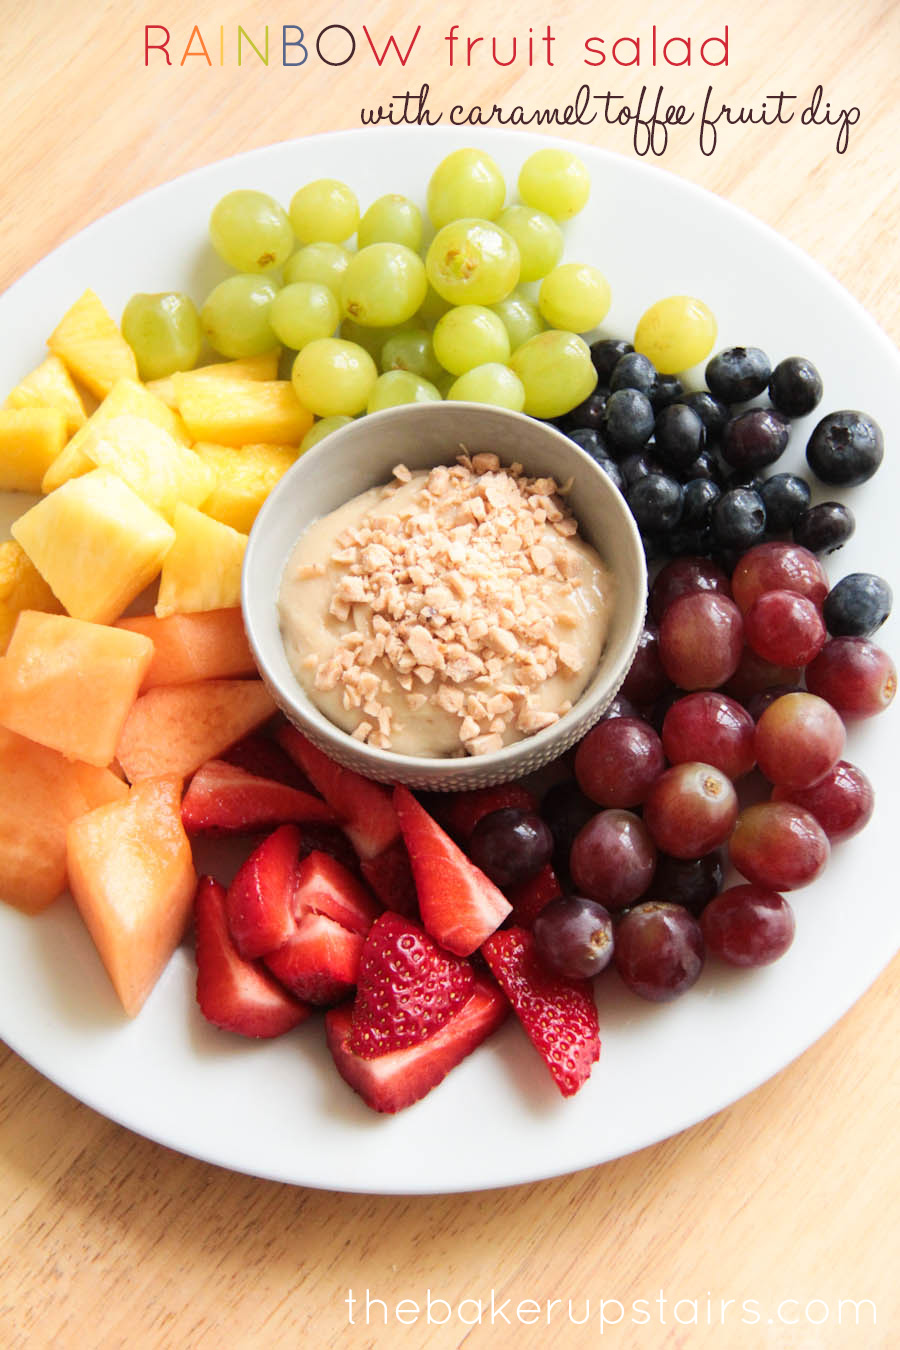 the baker upstairs: rainbow fruit salad with caramel toffee fruit dip